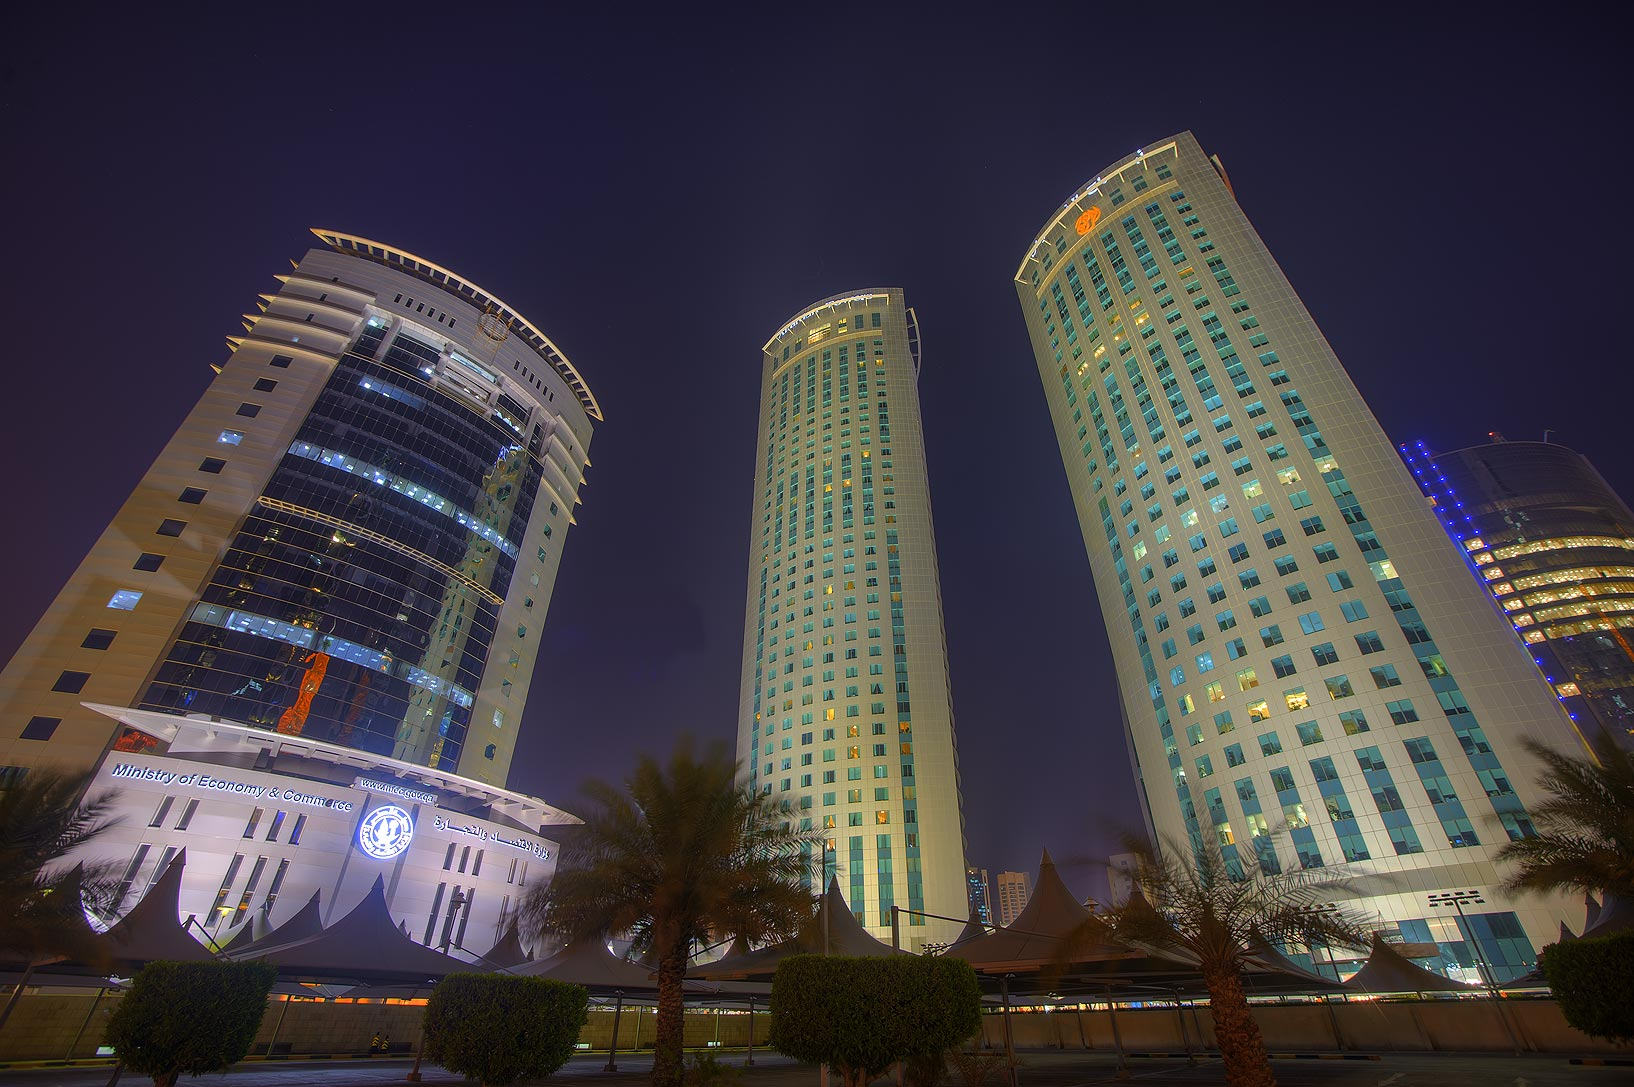 Ministry of Economy and Commerce and Al Fardan...in West Bay at evening. Doha, Qatar